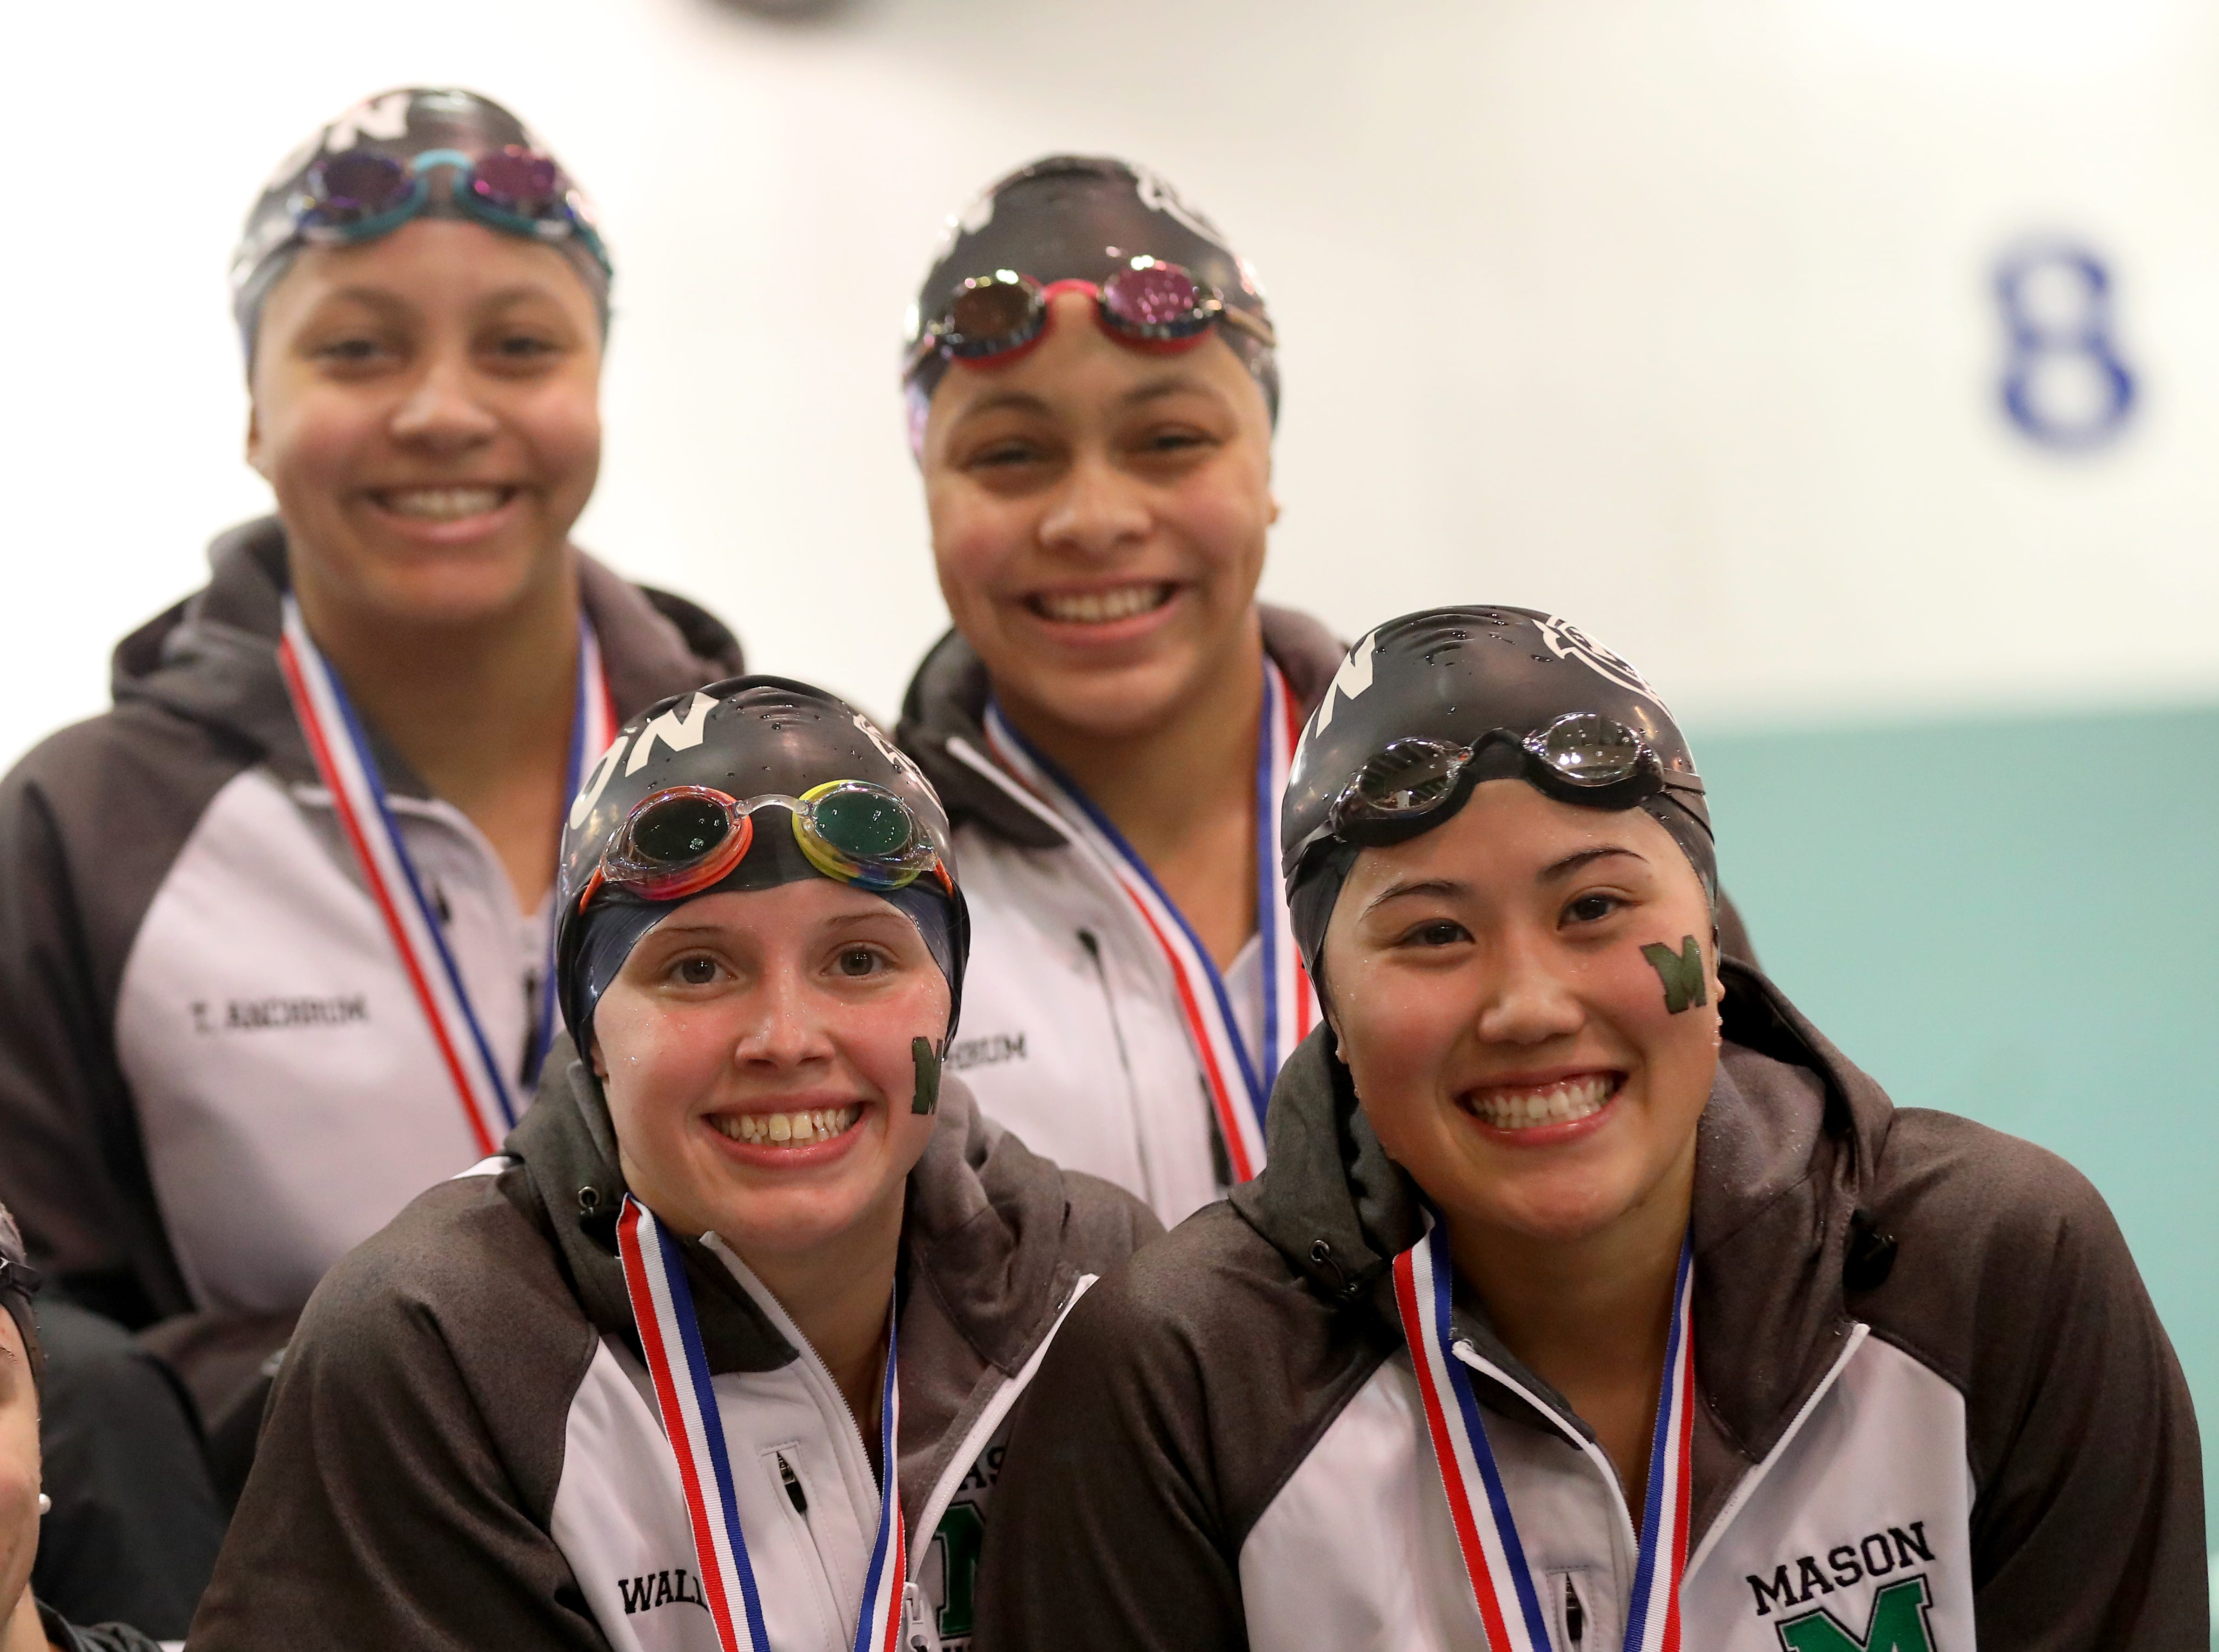 Mason relay team celebrates on the podium after finishing second in the 200 free relay at the OHSAA state swimming and diving championships in Canton, Ohio, Friday, Feb. 23, 2019.